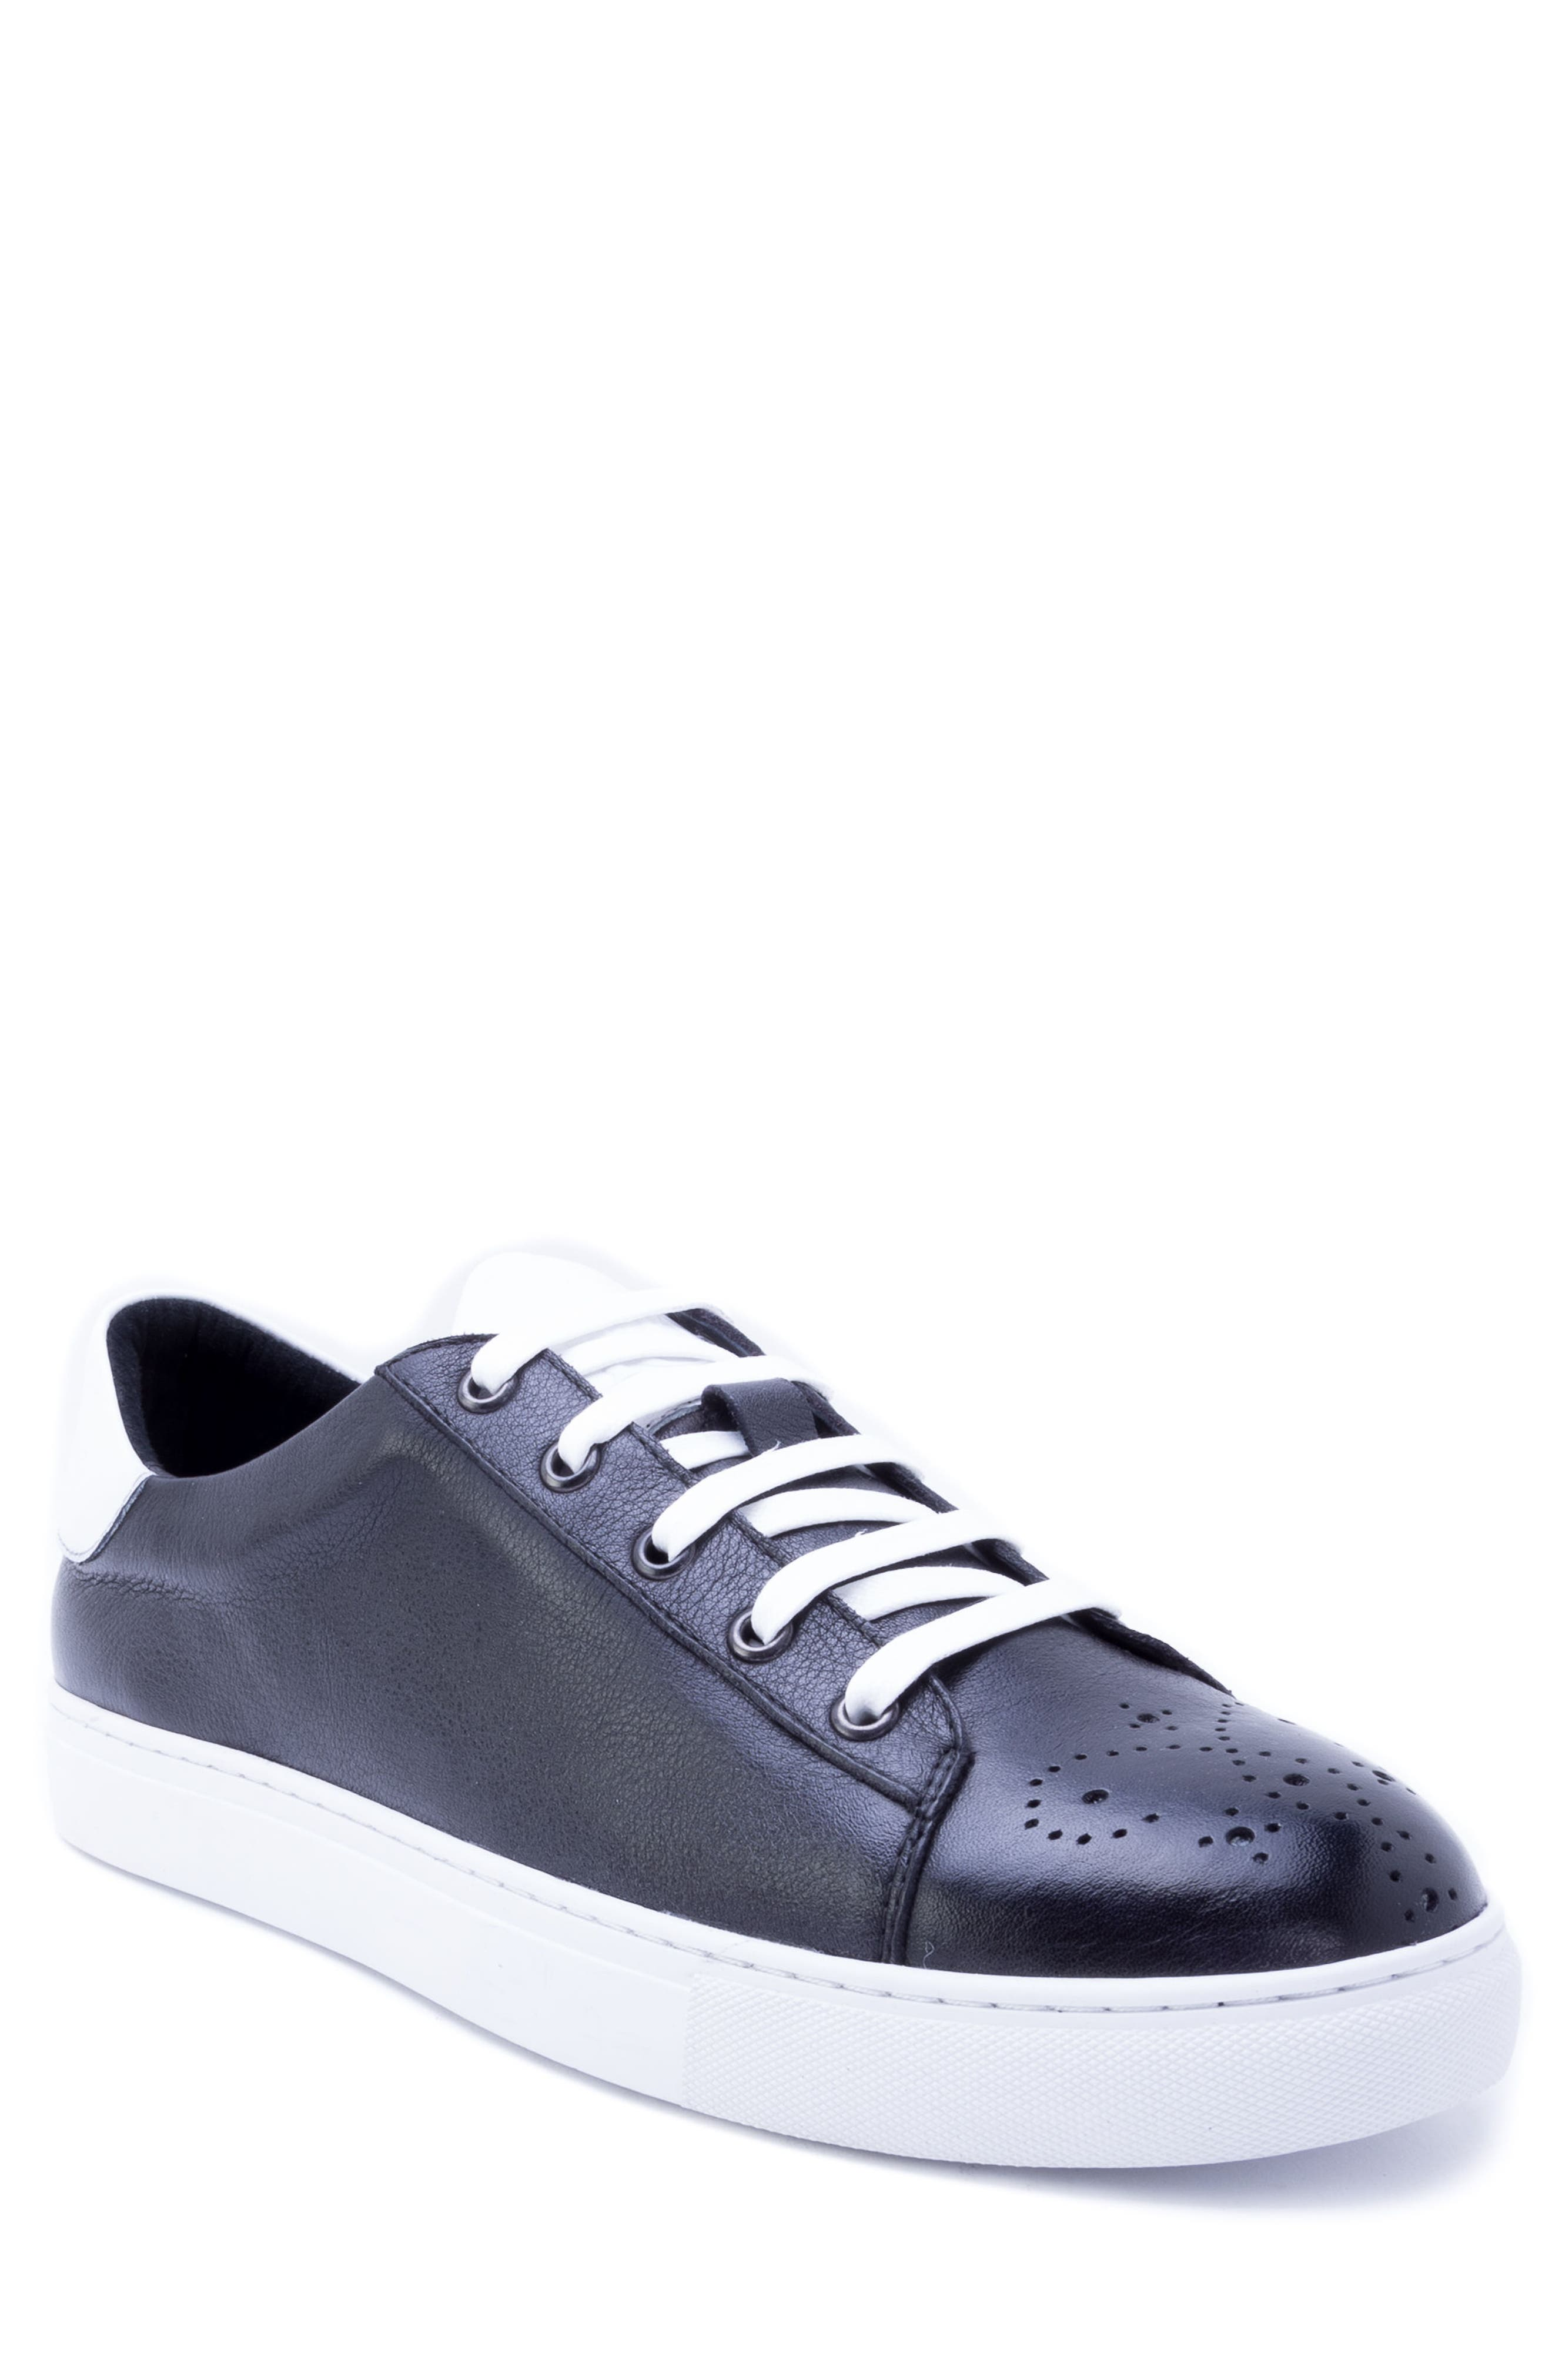 Sinatra Sneaker,                             Main thumbnail 1, color,                             BLACK LEATHER